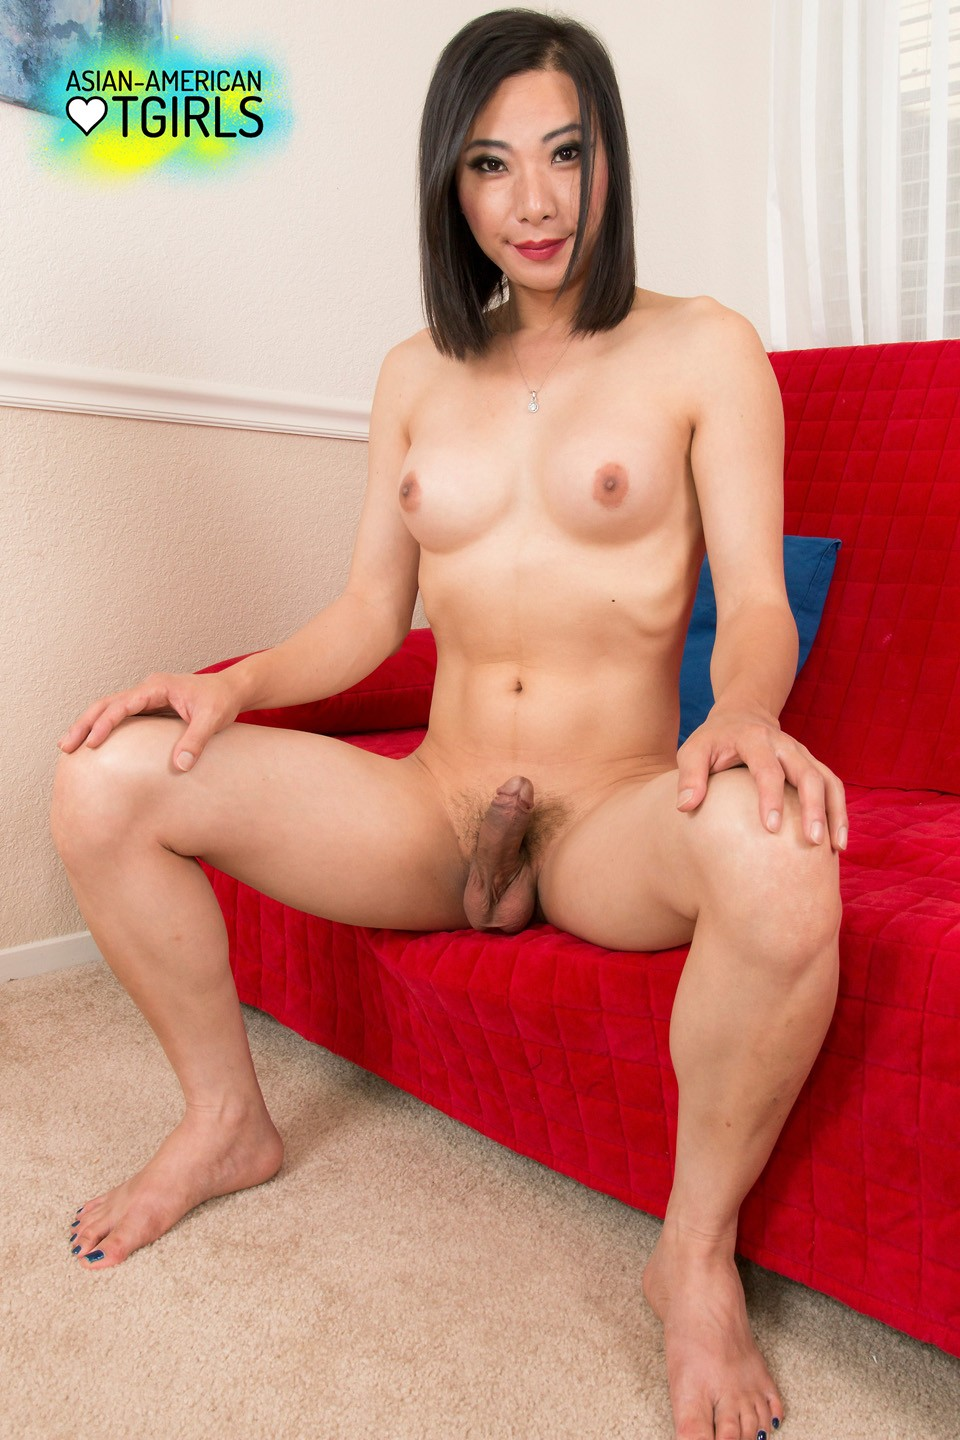 American Tgirls Porn asian american tgirls | asia ladyboy blog